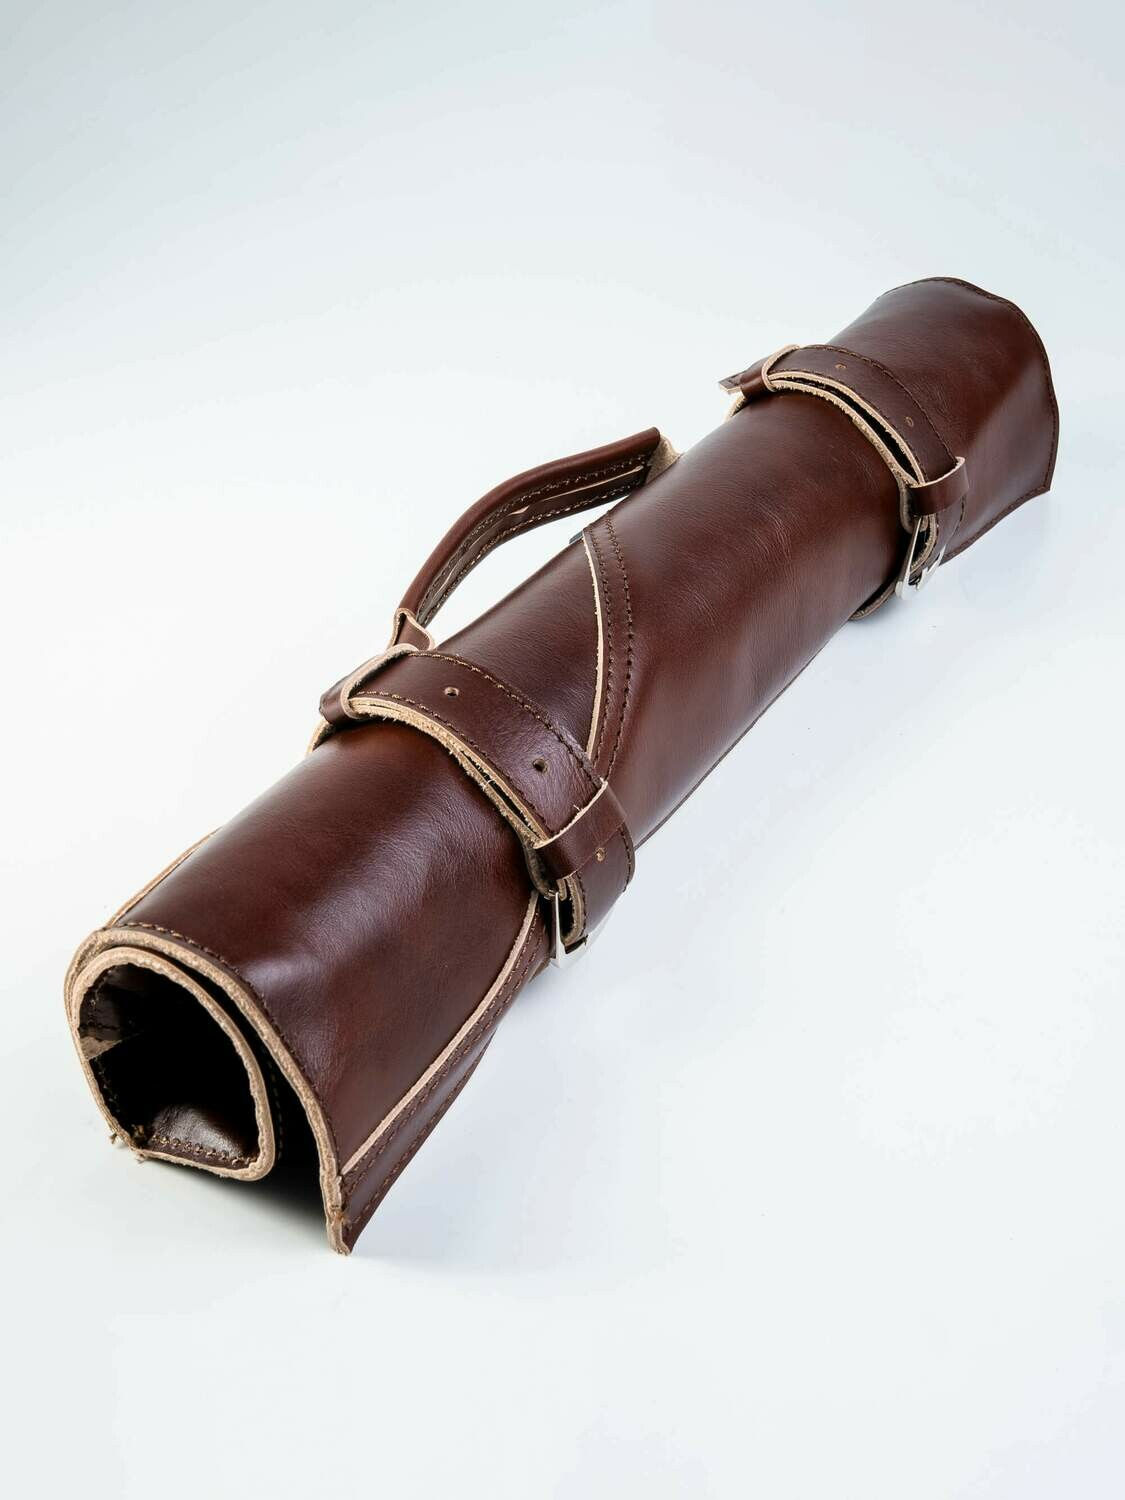 ROLL-LR340 - LEATHER BAG SCREW FOR KNIVES